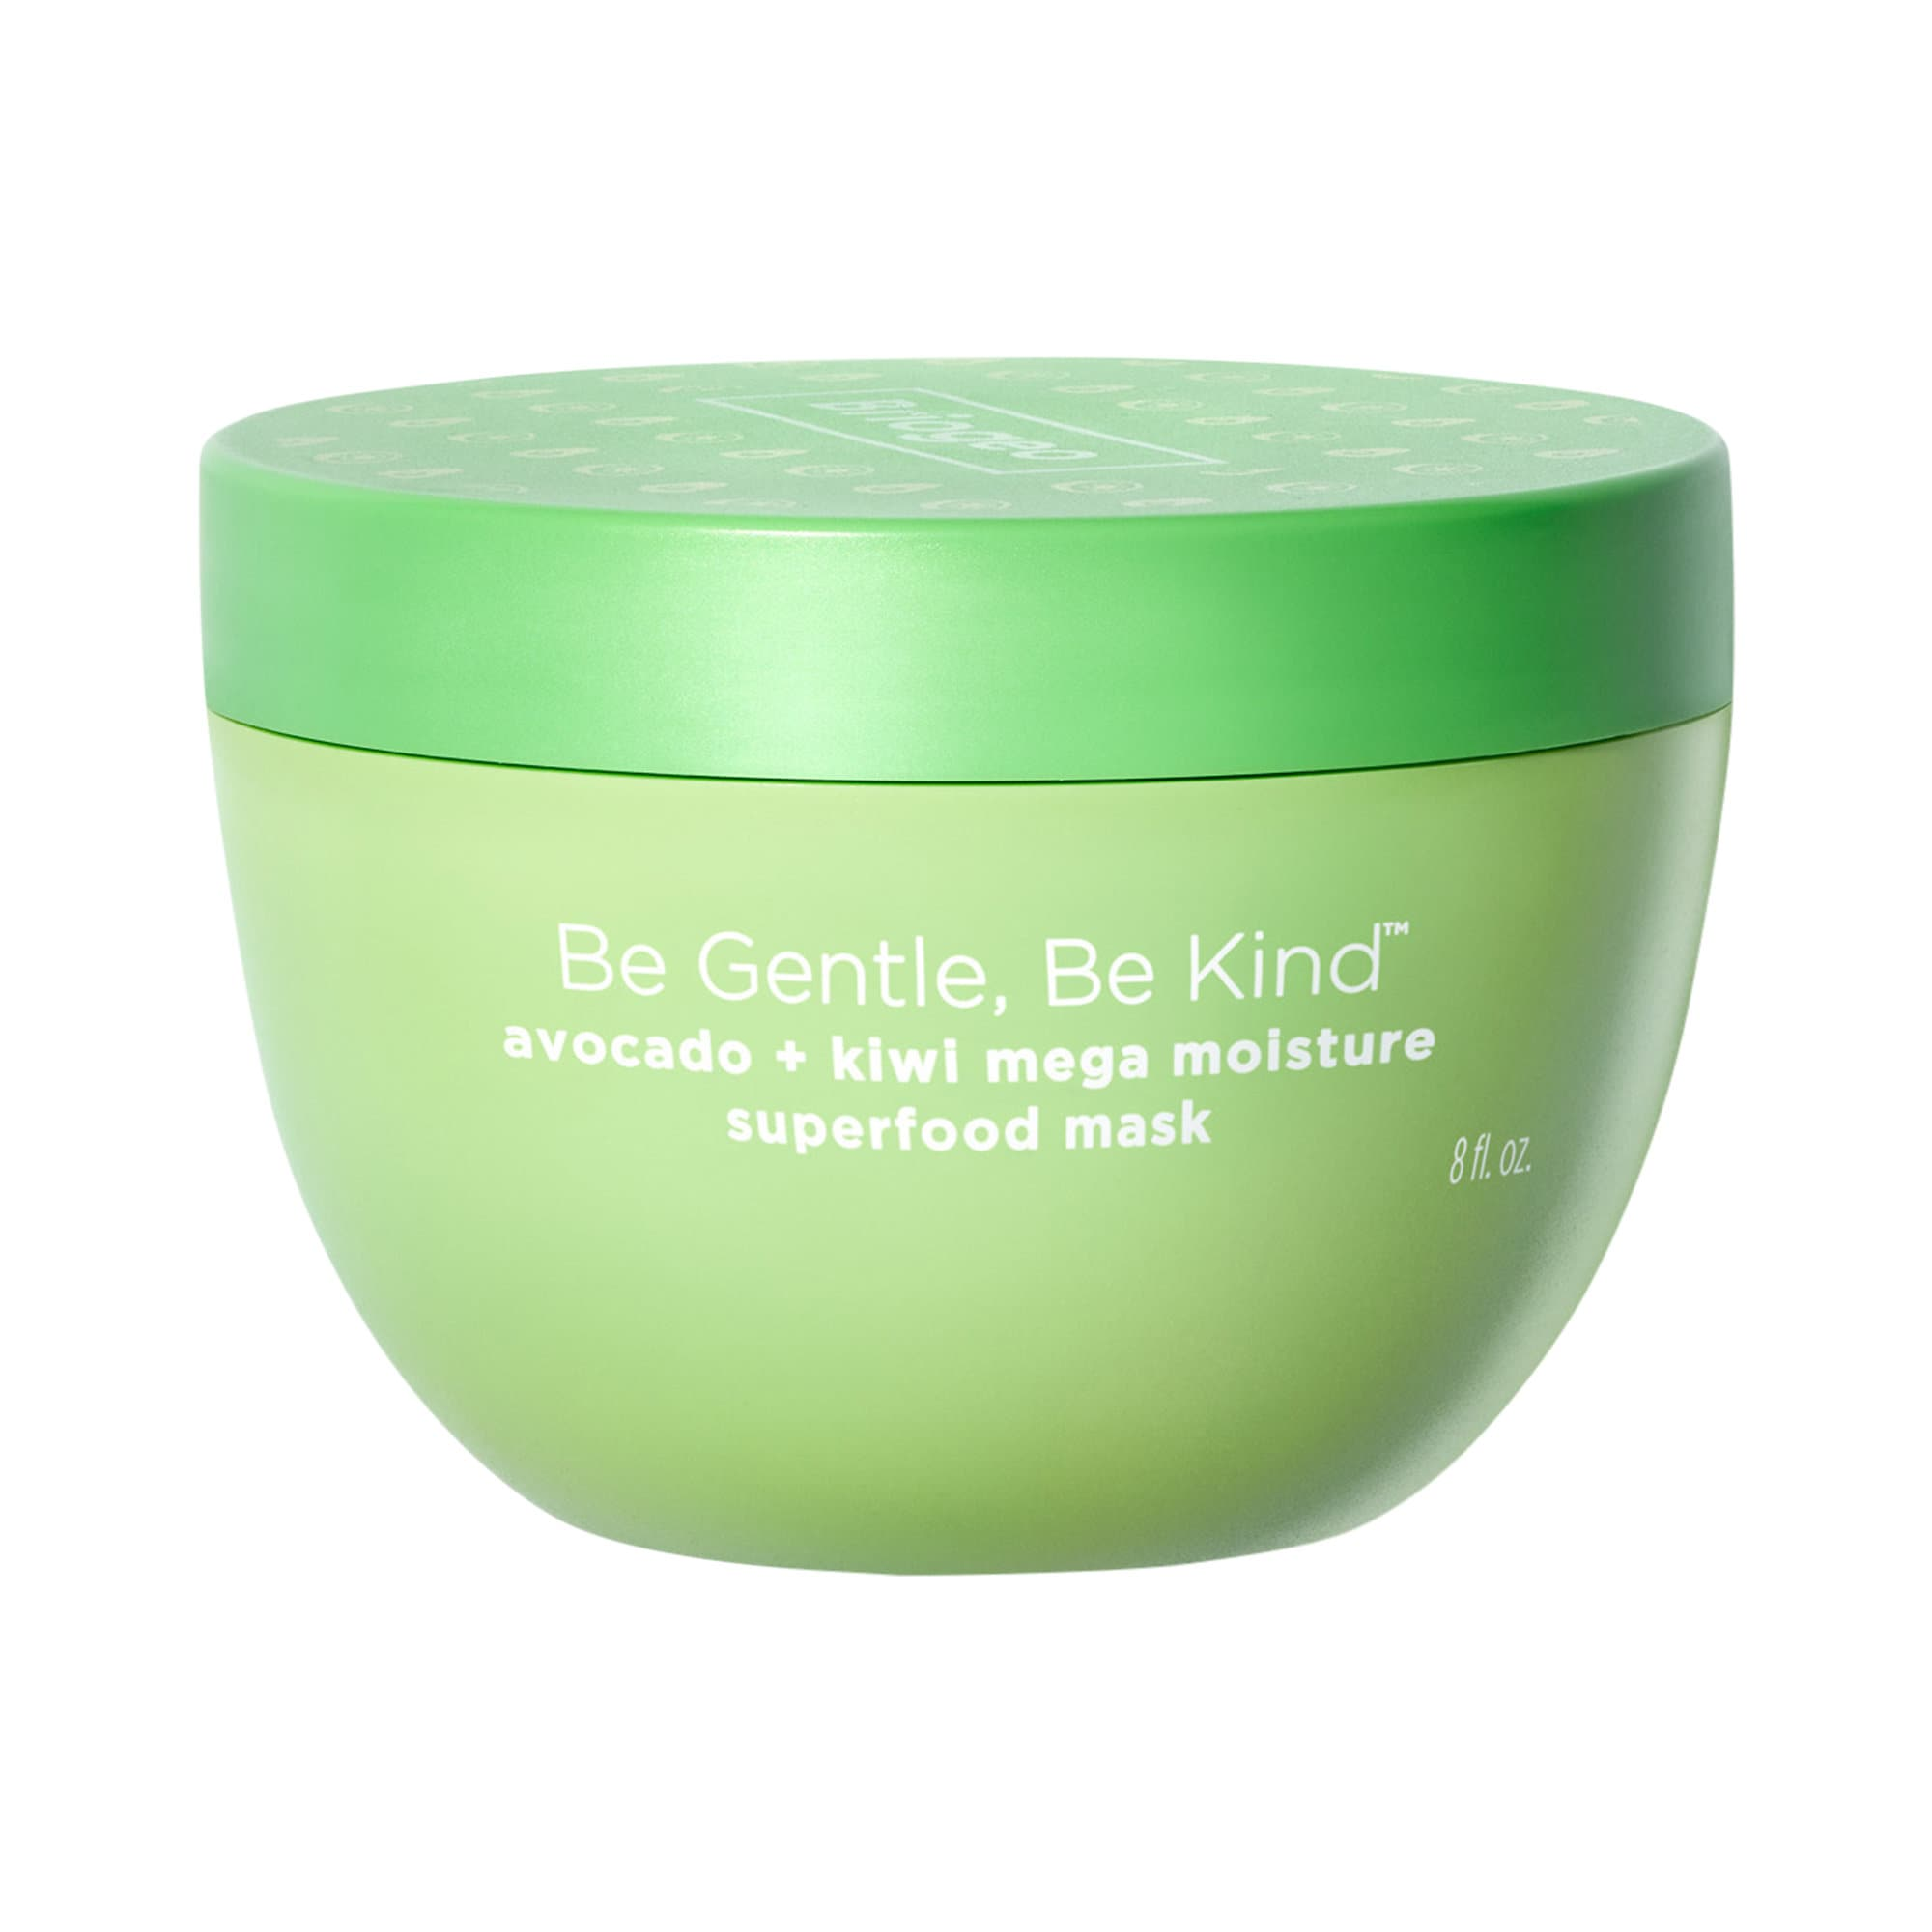 Briogeo - Be Gentle, Be Kind™ Avocado + Kiwi Mega Moisture Superfoods Hair Mask